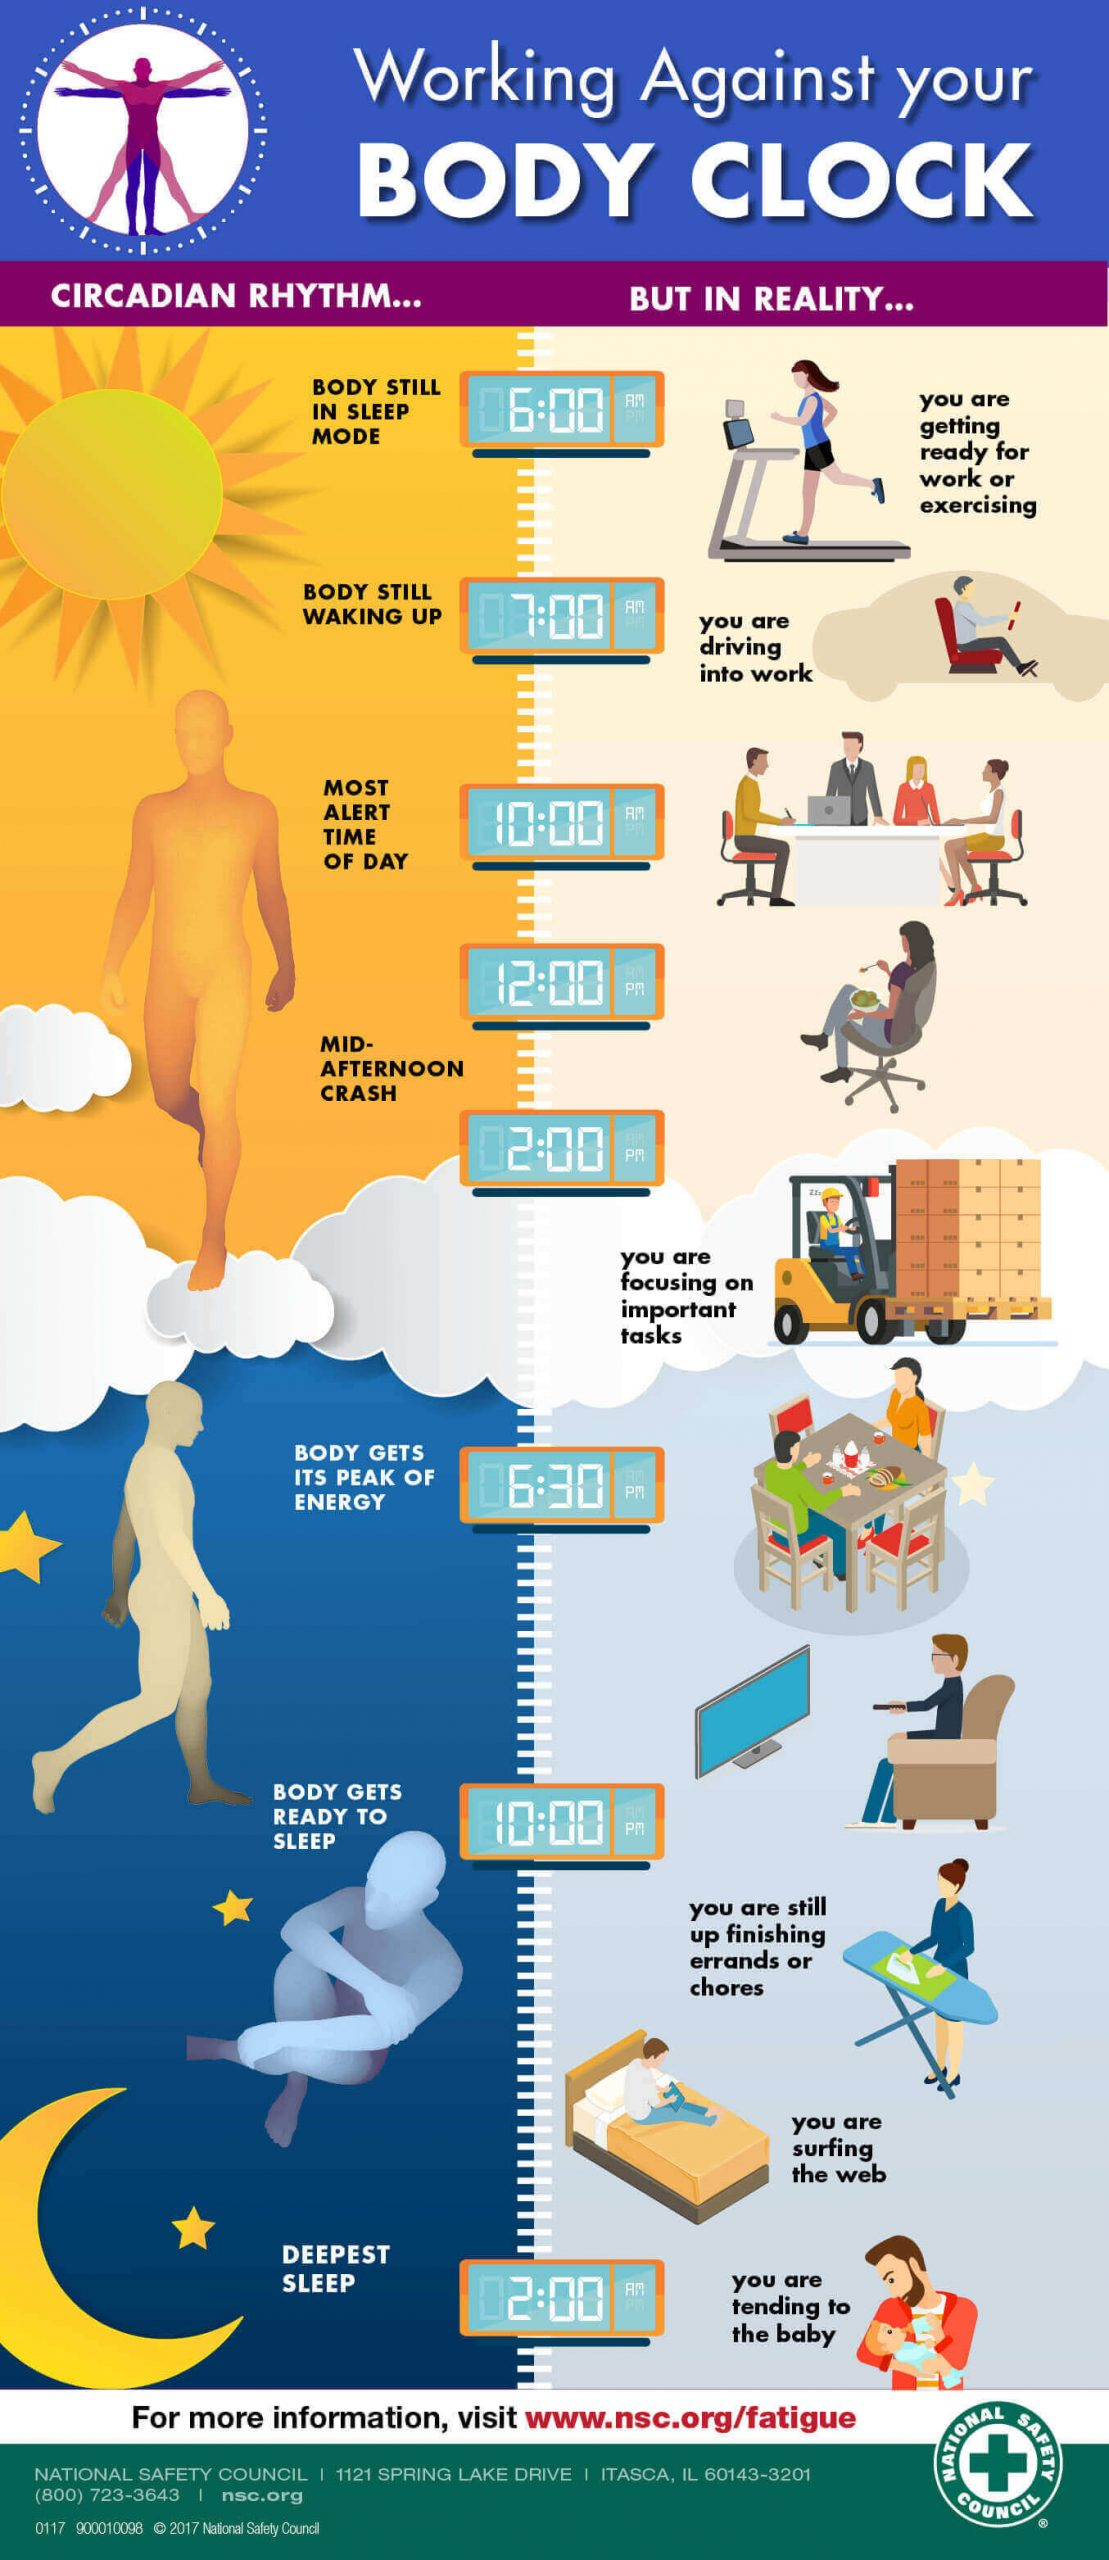 an infographic about working against your body clock